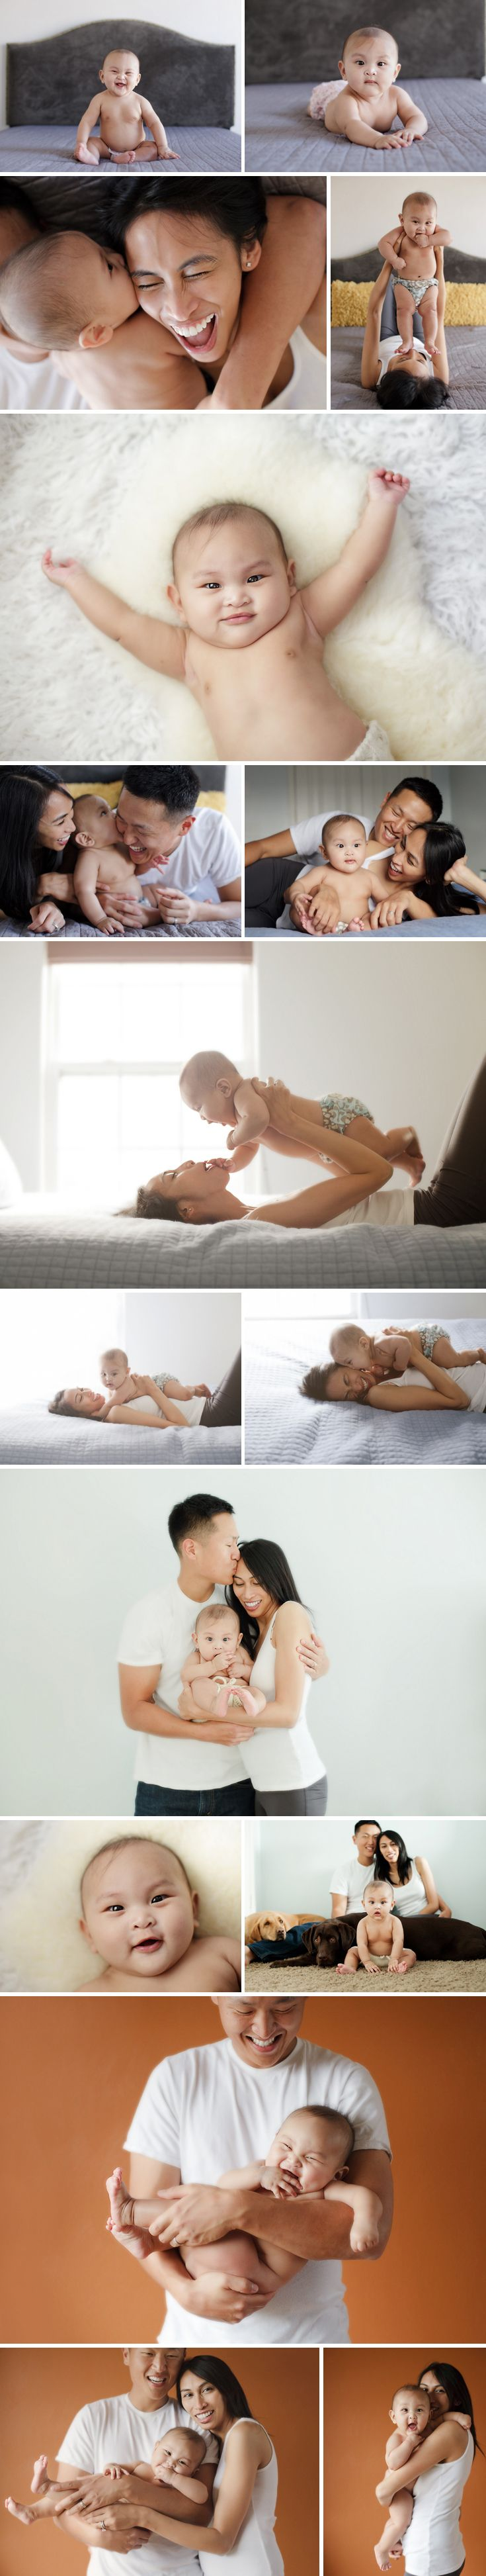 6 months See more of our pins at http://www.pinterest.com/mynovabirth/